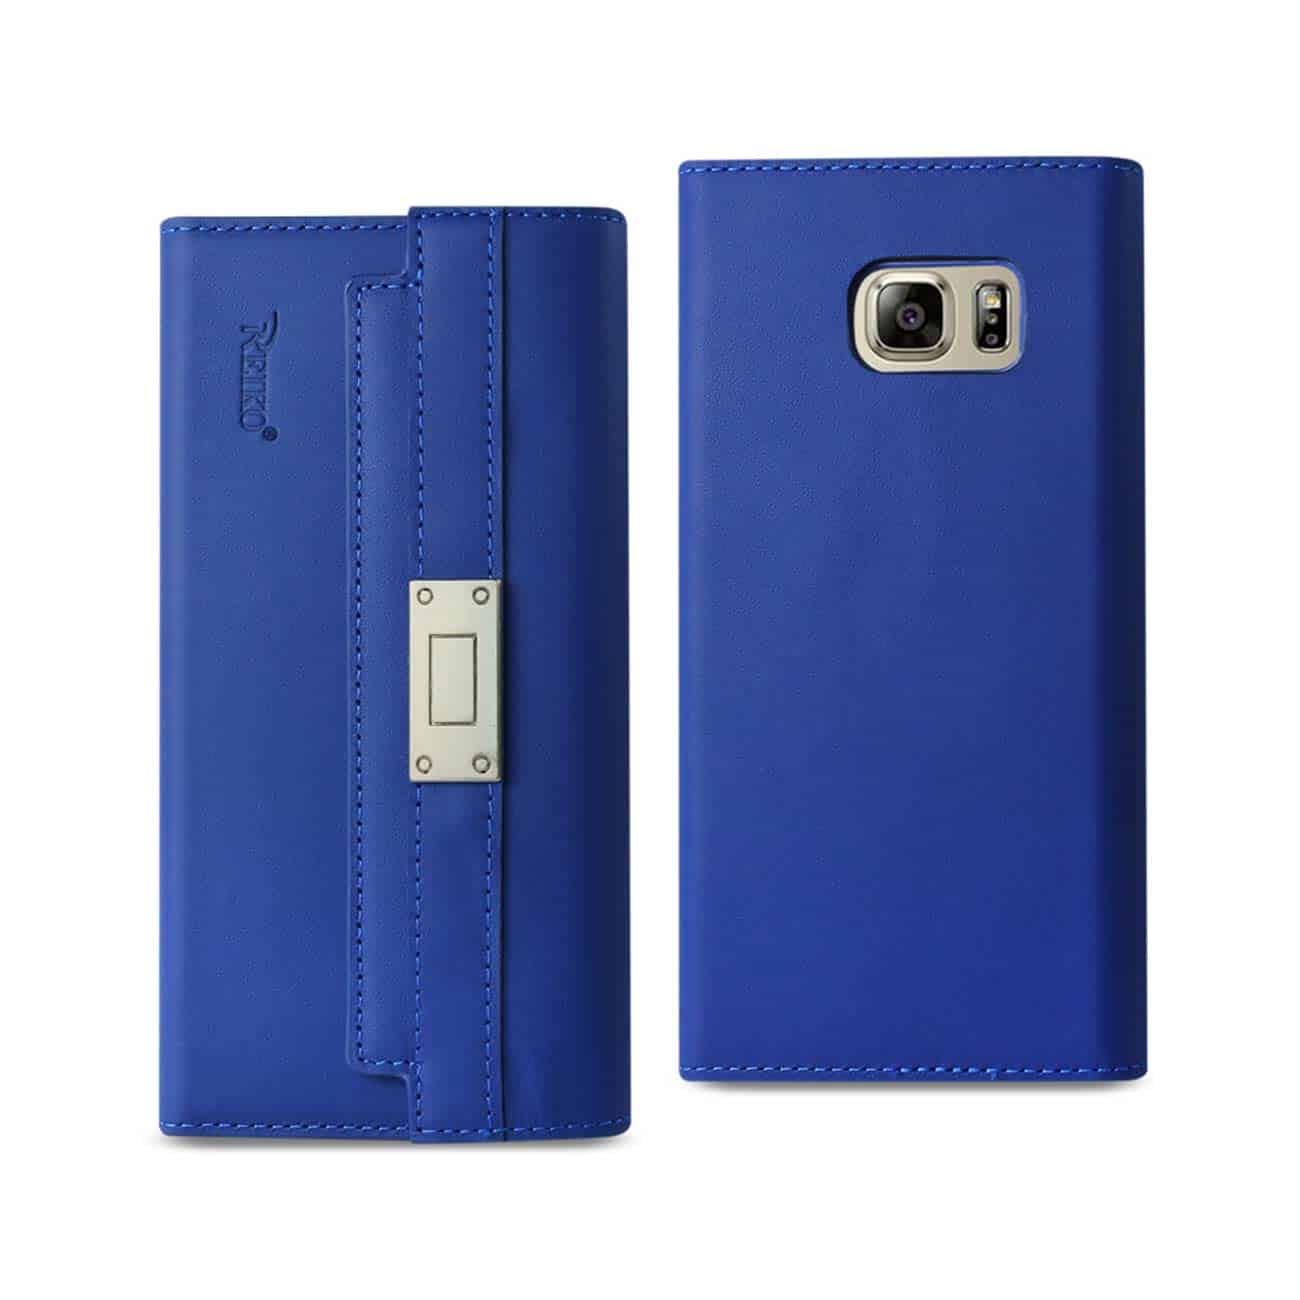 SAMSUNG GALAXY NOTE 5 GENUINE LEATHER RFID WALLET CASE AND METAL BUCKLE BELT IN ULTRAMARINE